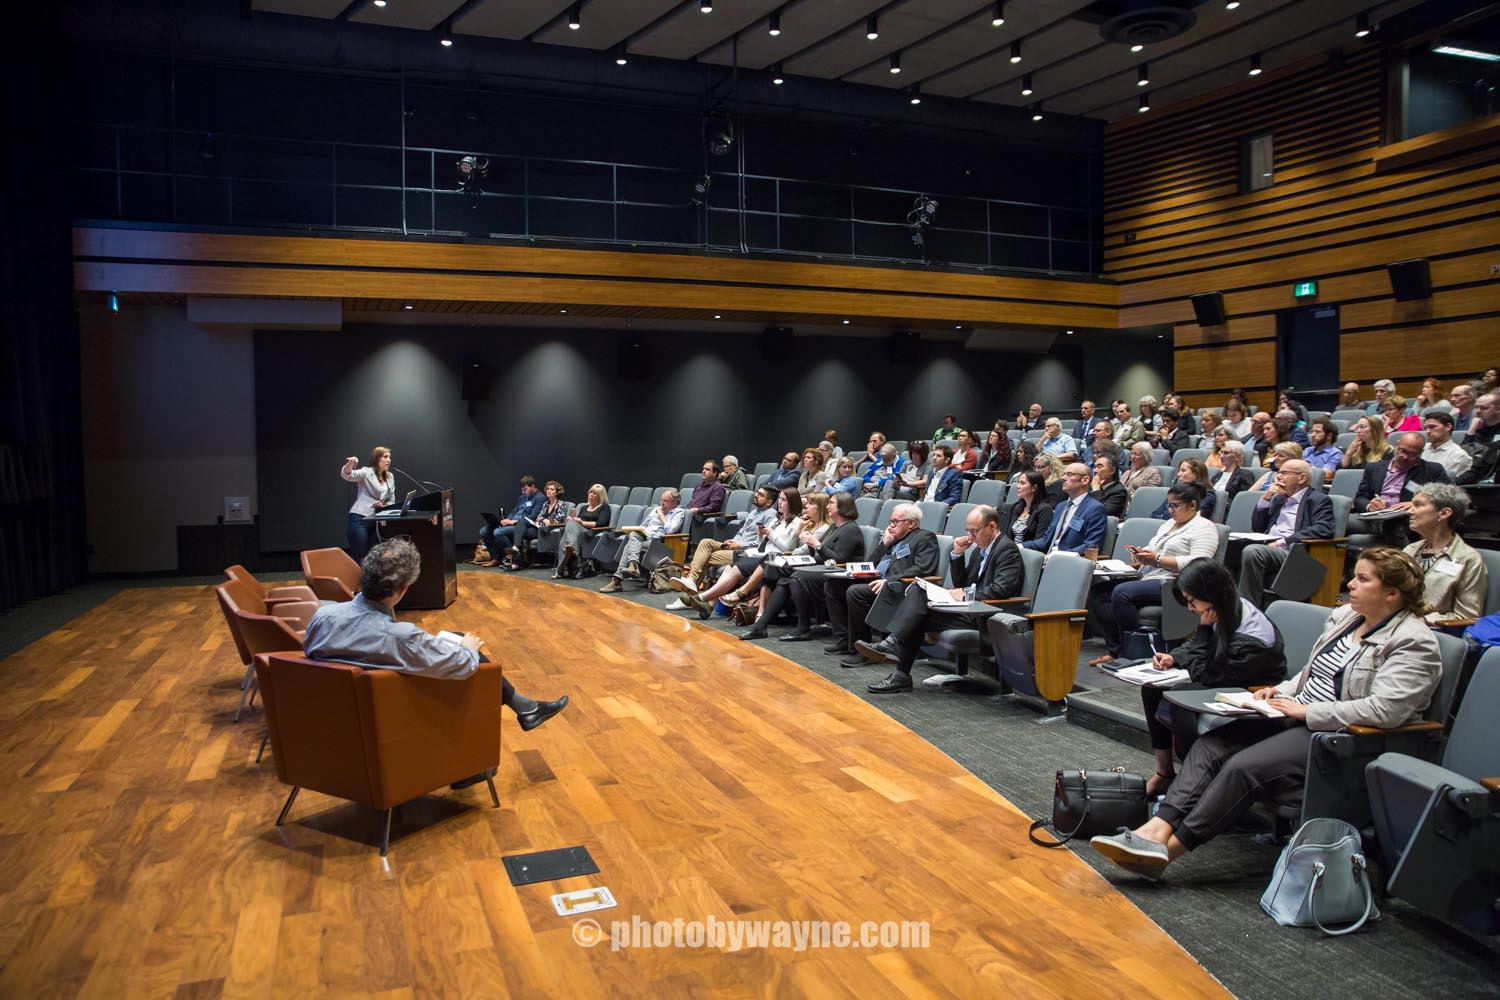 21-lecture-hall-conference-photographer.jpg